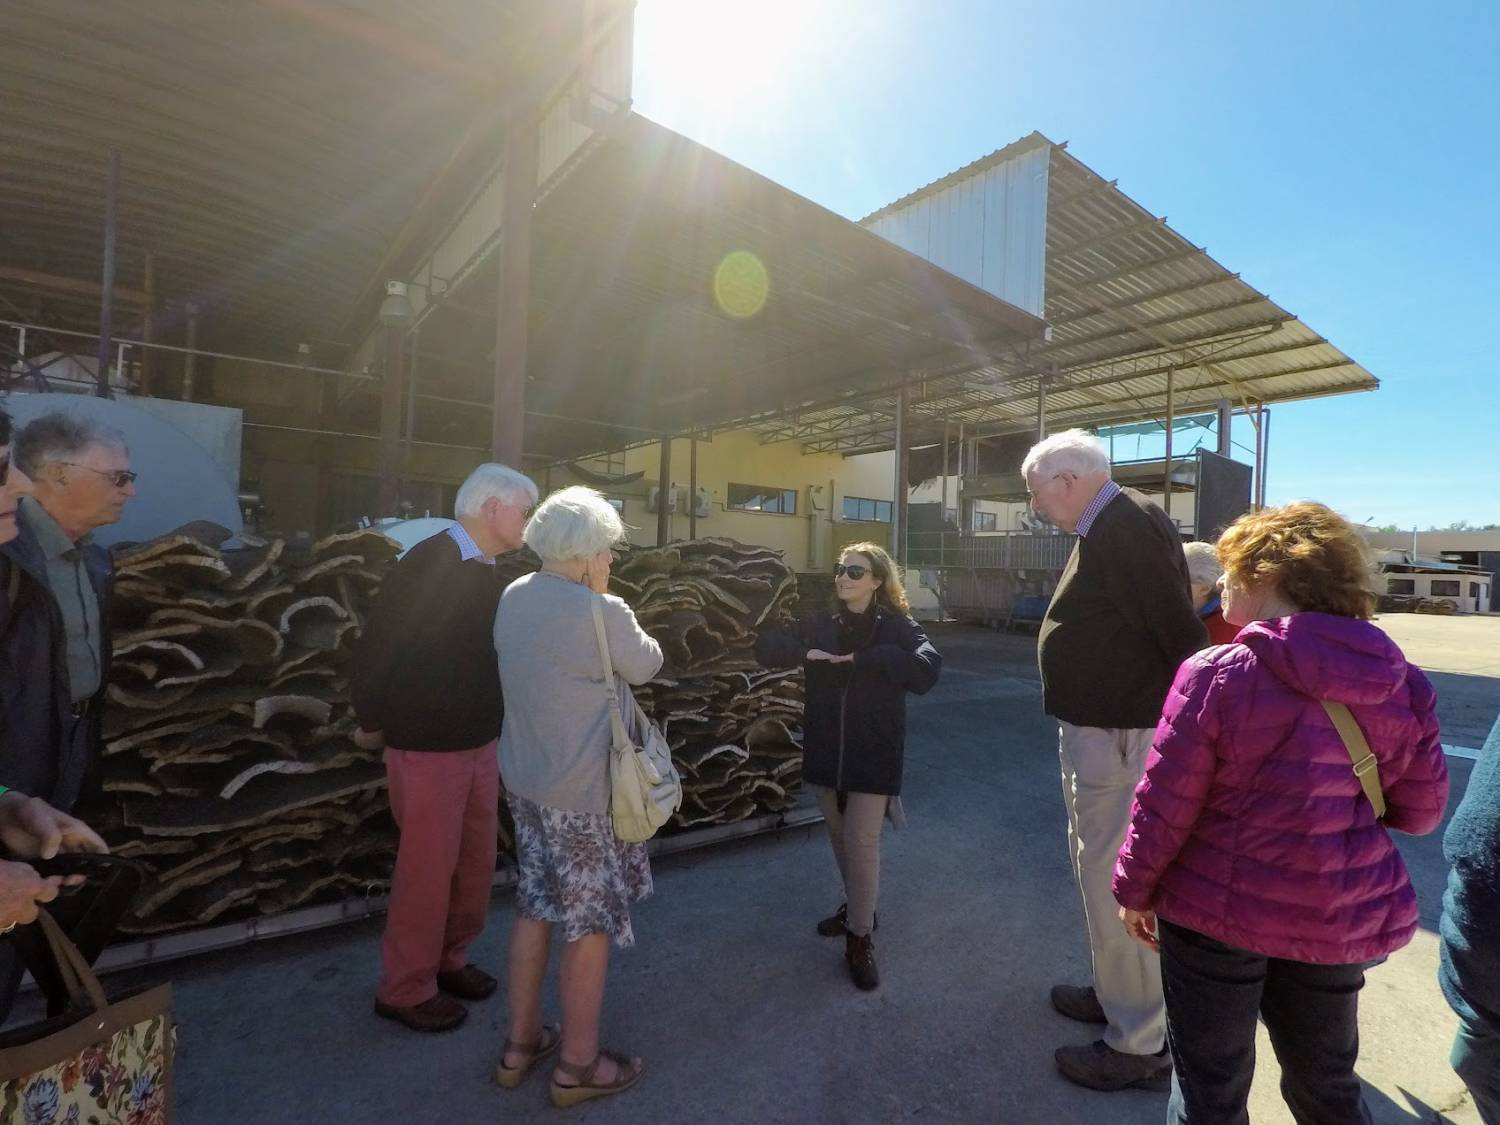 Cork Factory Tour, Algarve - Group